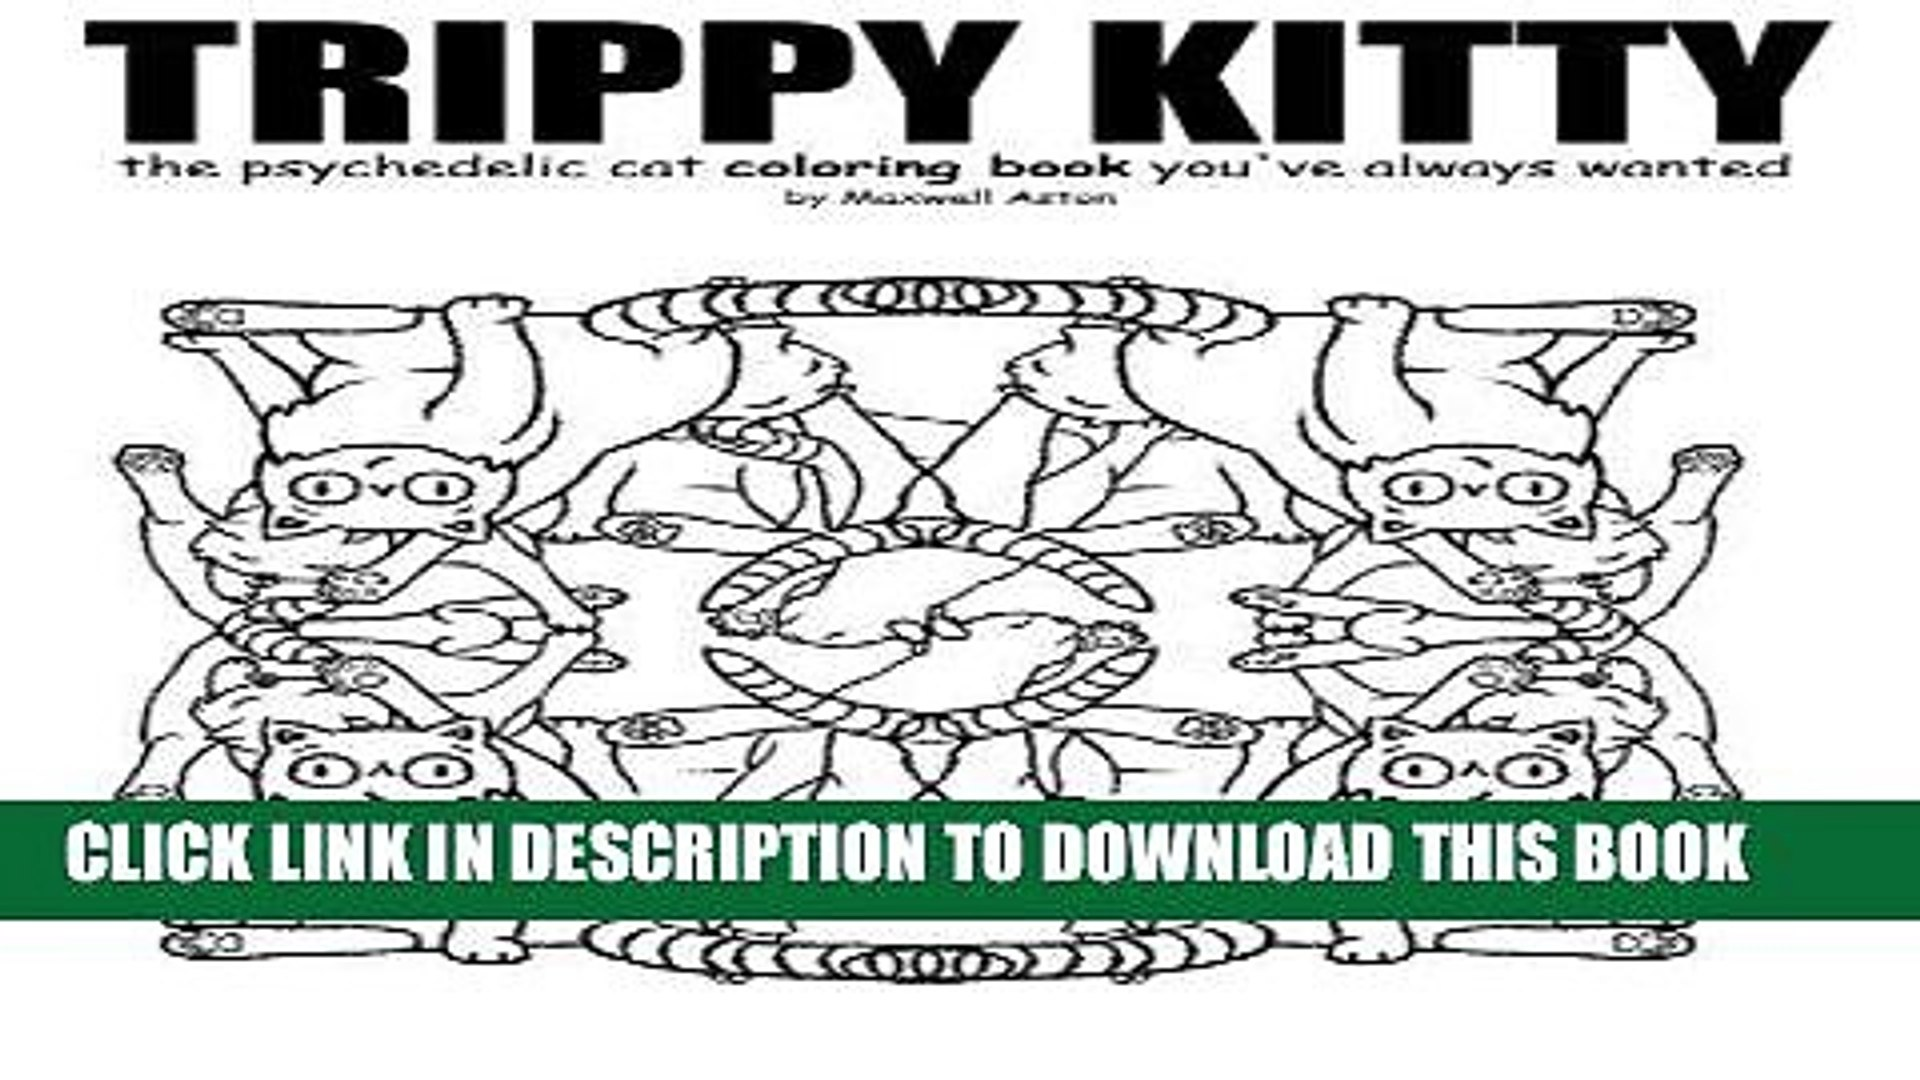 - New] Ebook Trippy Kitty: The Psychedelic Cat Coloring Book You Ve